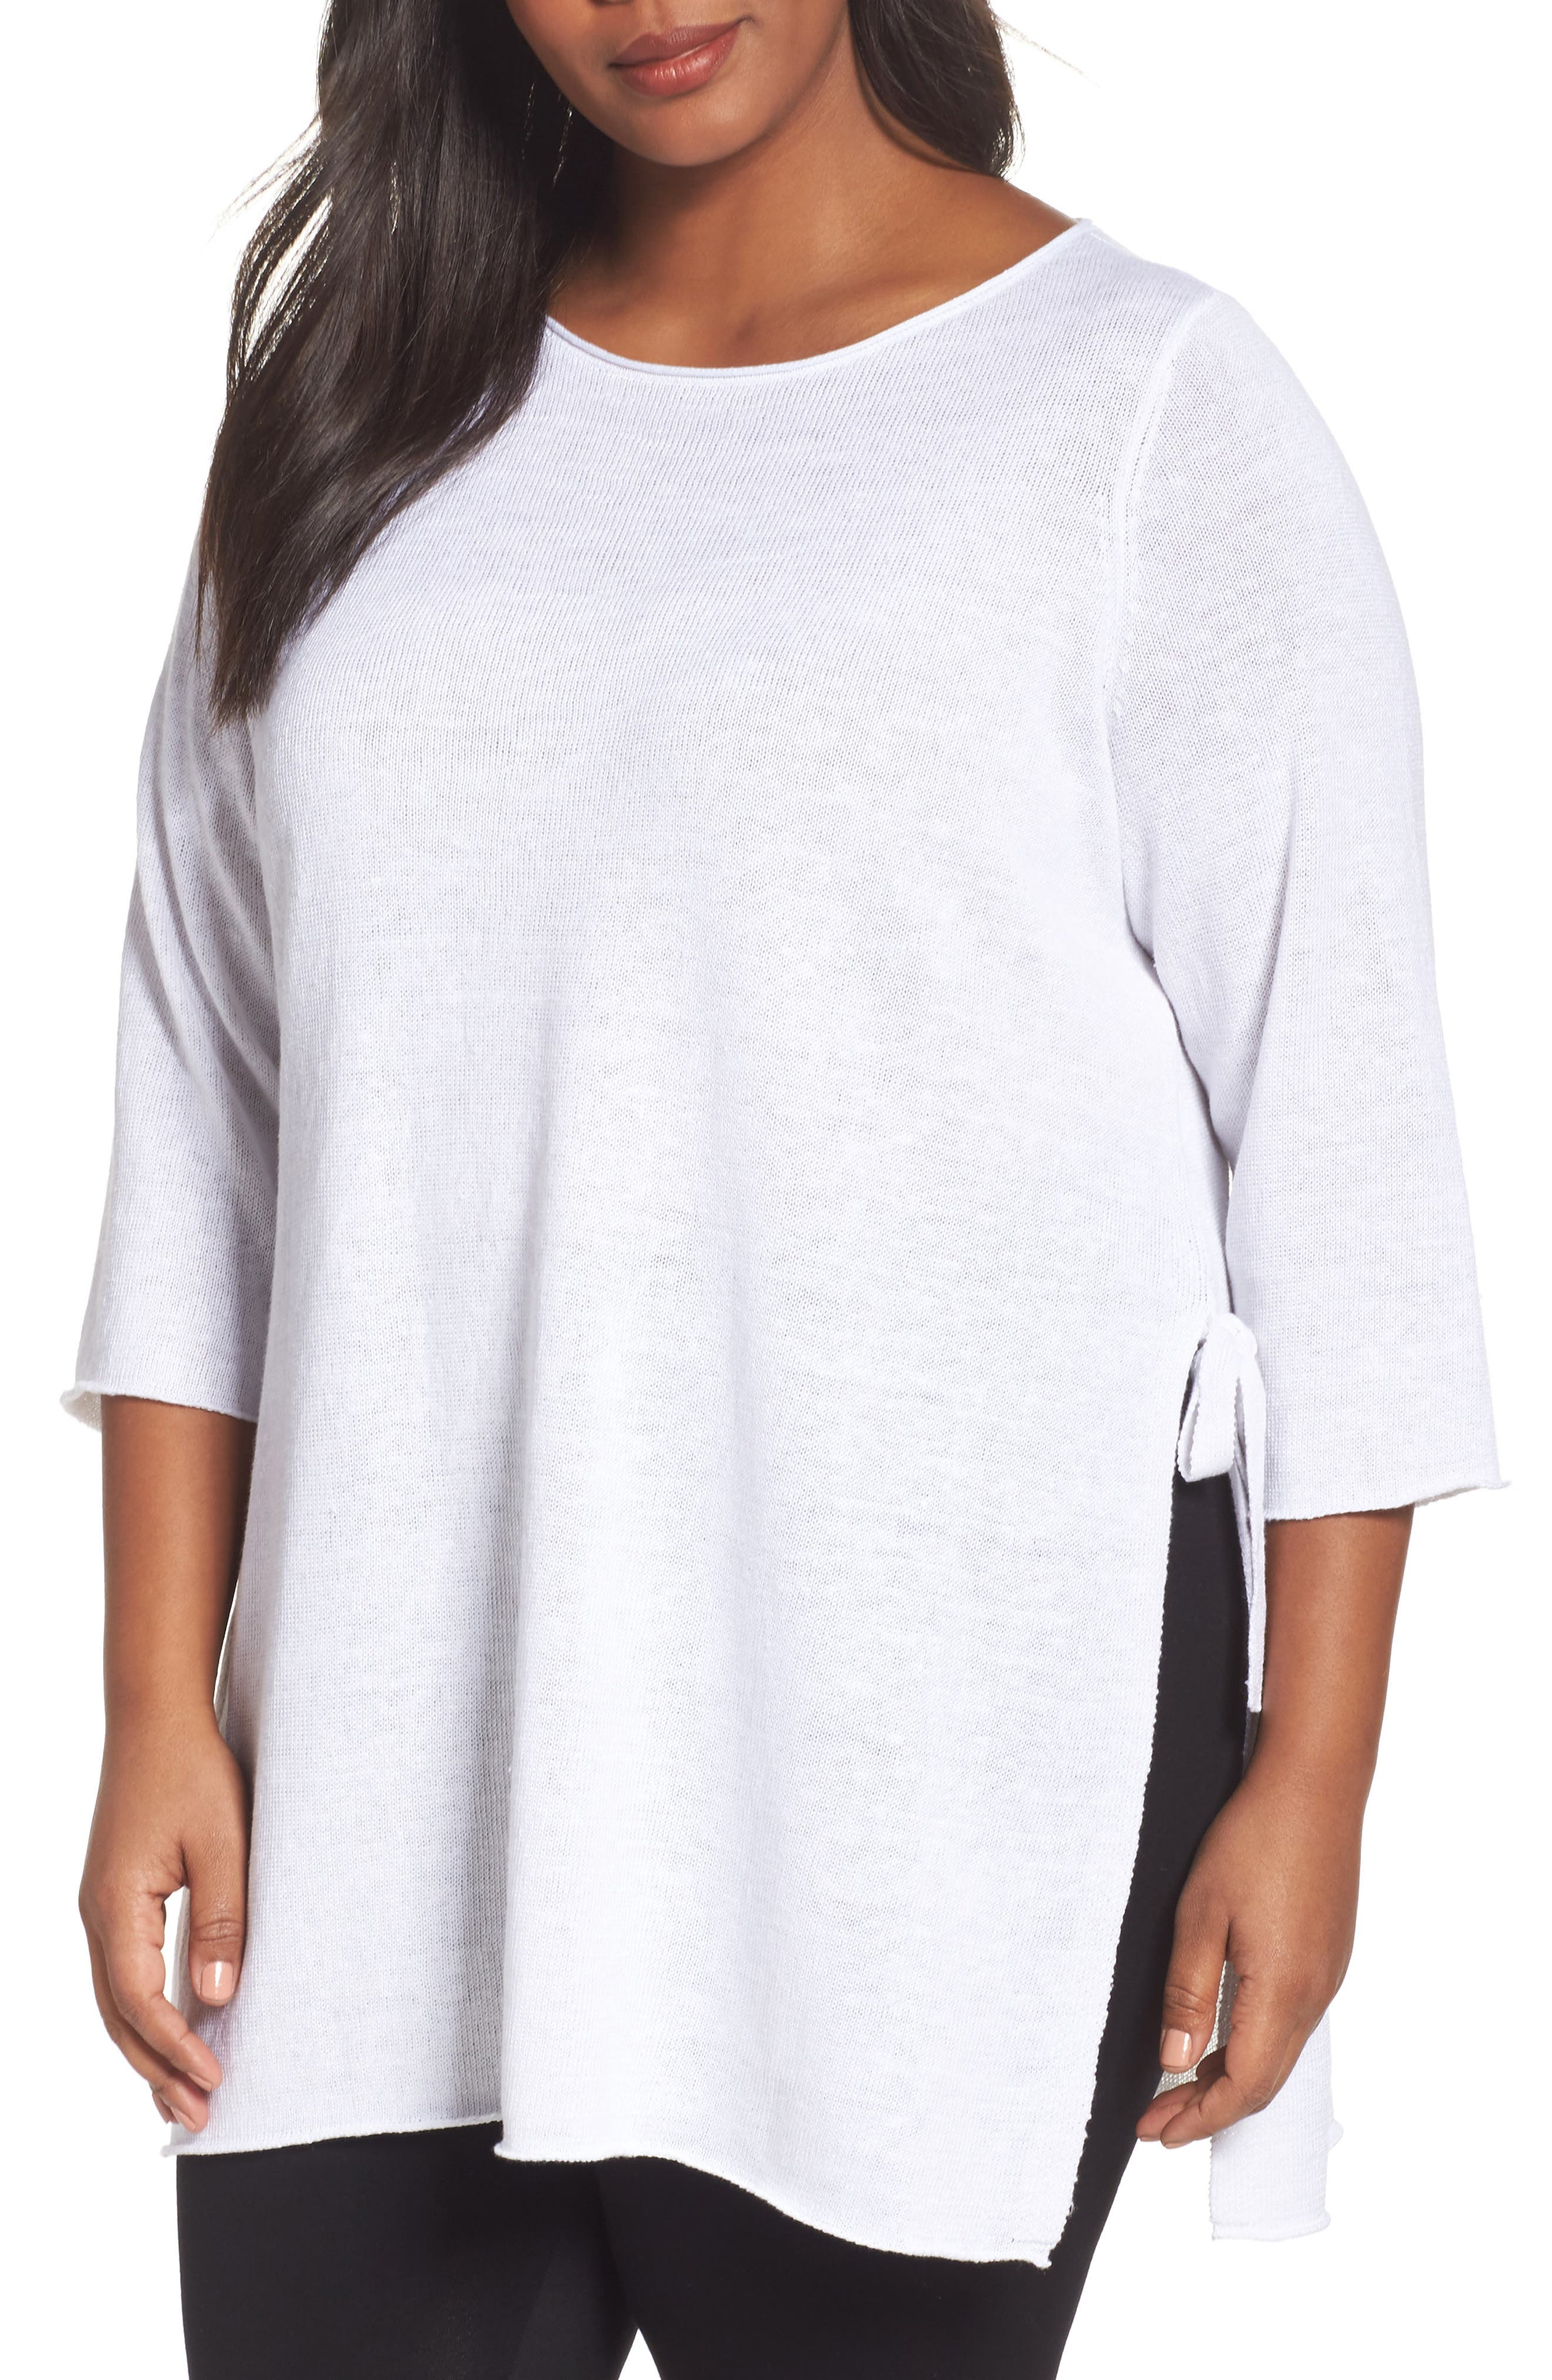 Alternate Image 1 Selected - Eileen Fisher Side Tie Organic Linen Sweater (Plus Size)